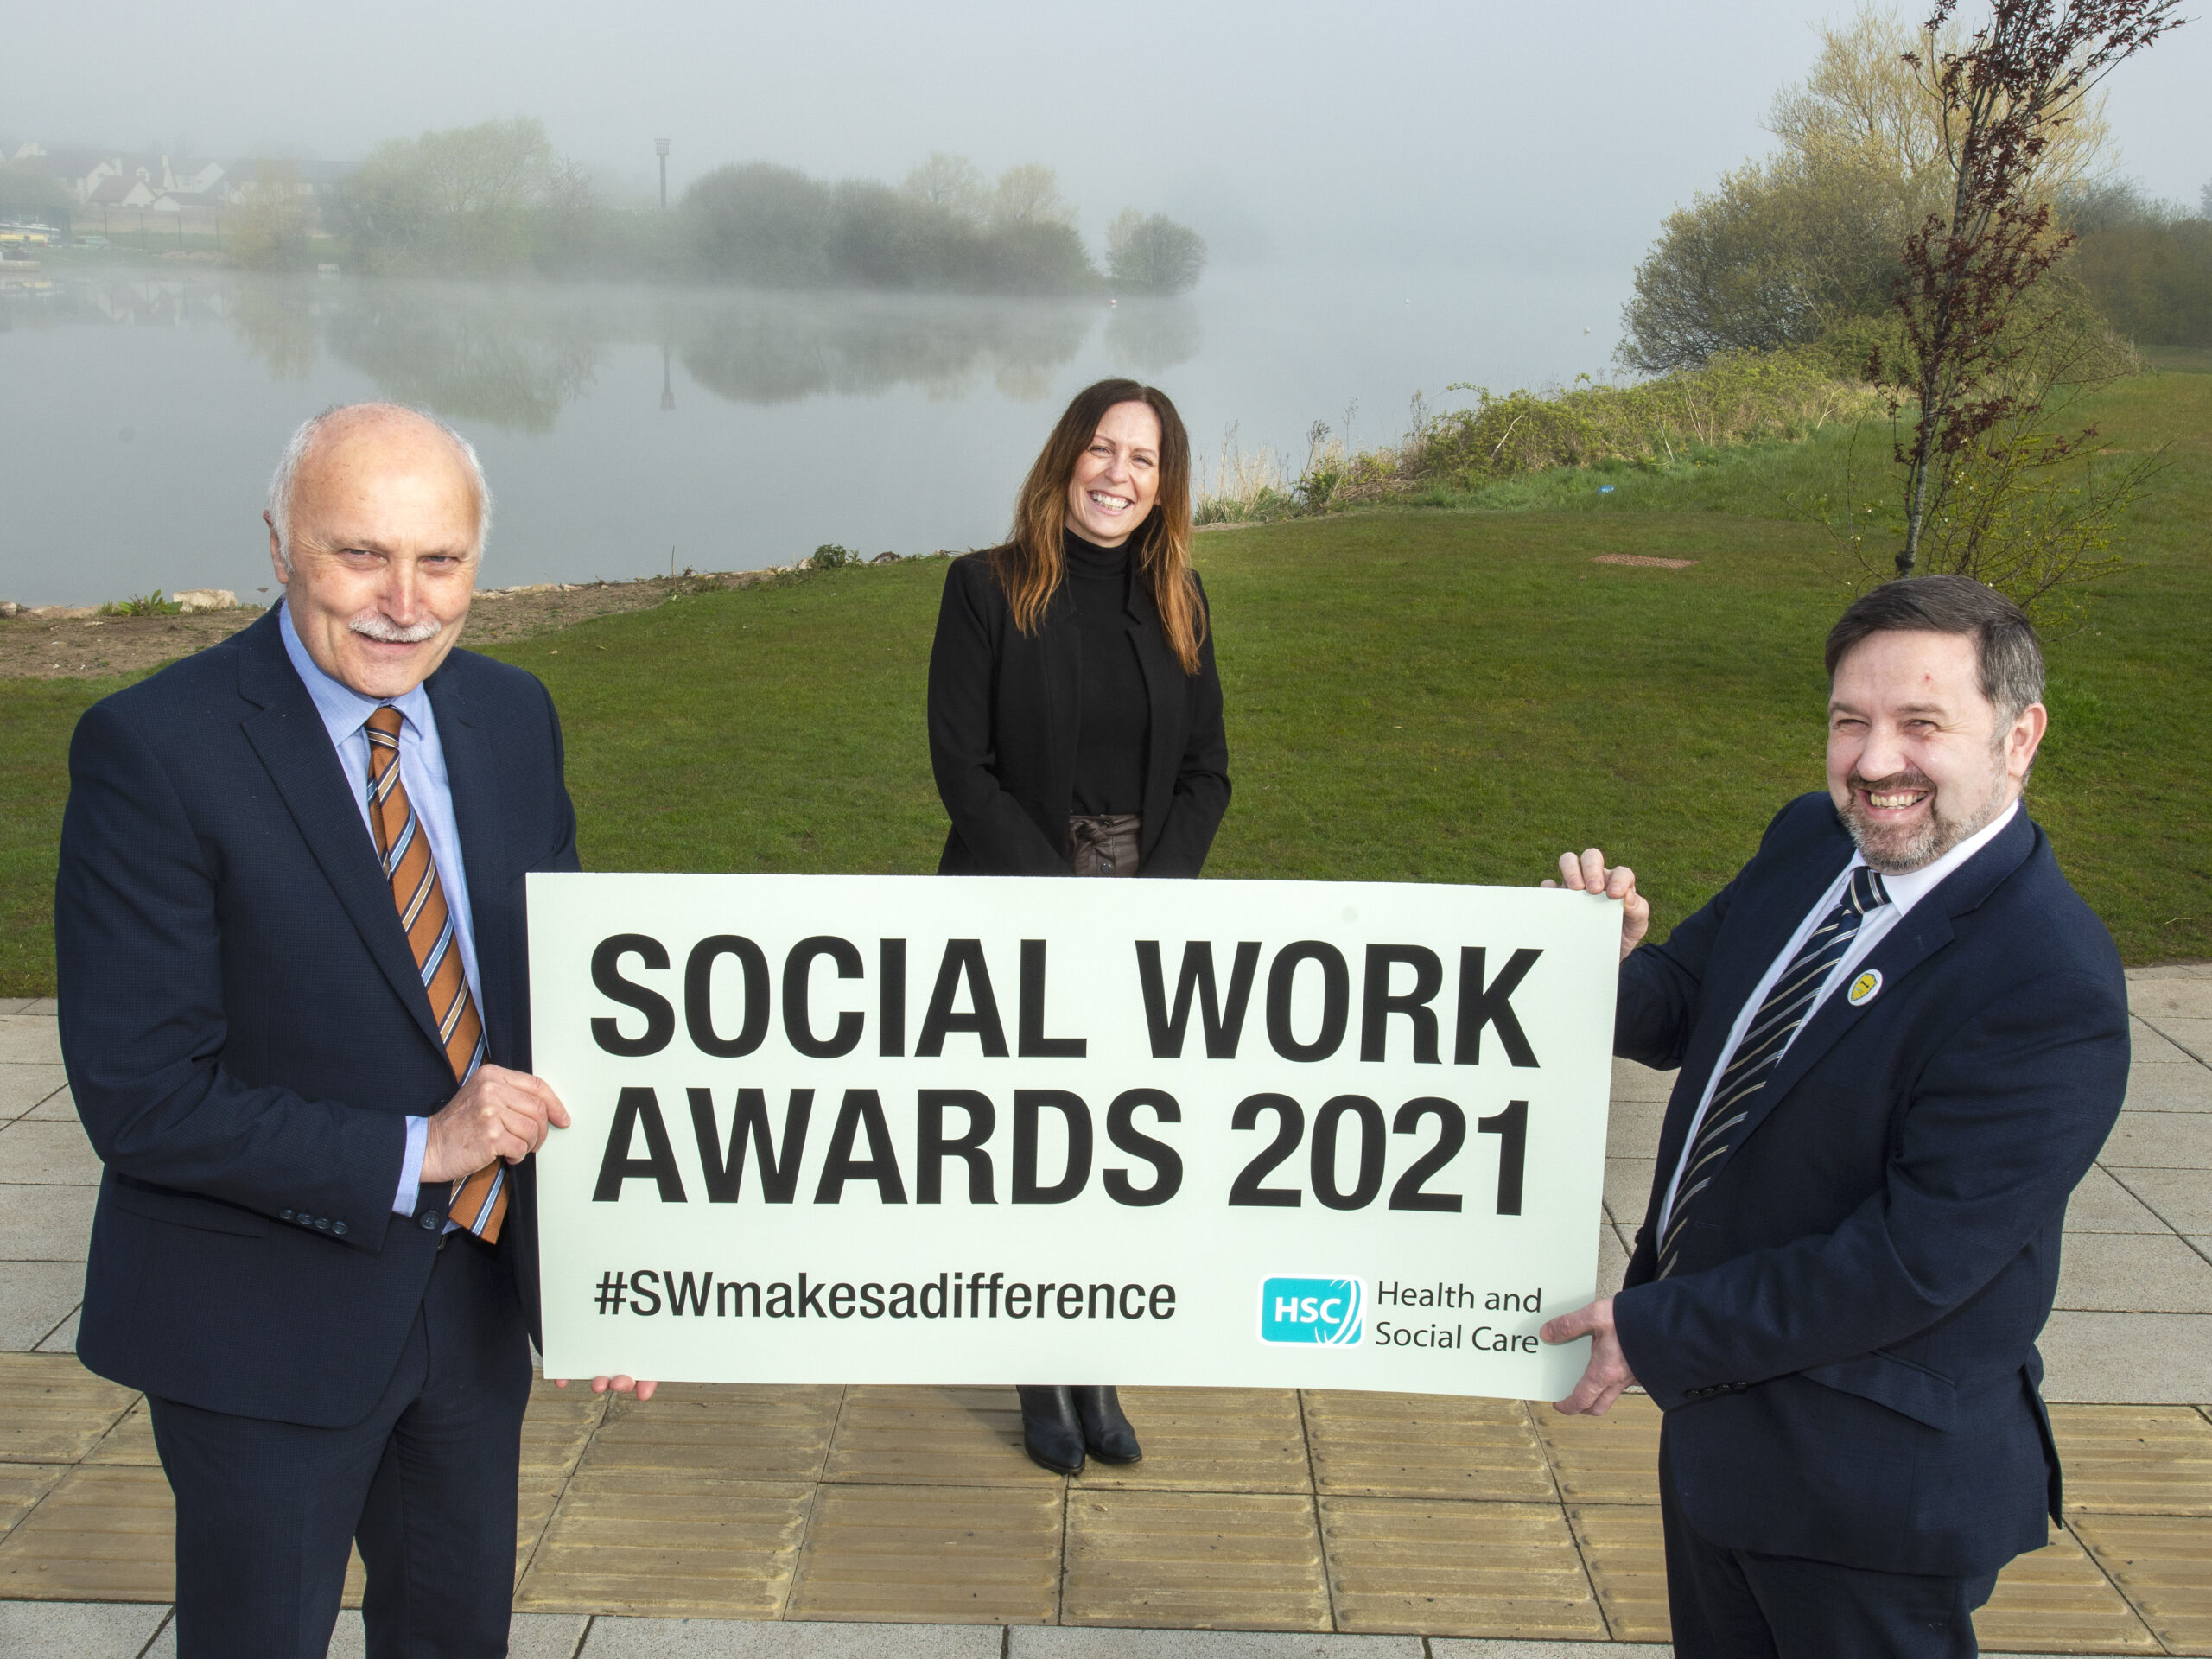 Launch SW Awards - Minister 14.04.21 - NI Social Work Awards 2021: Nominations now open | Newry Times